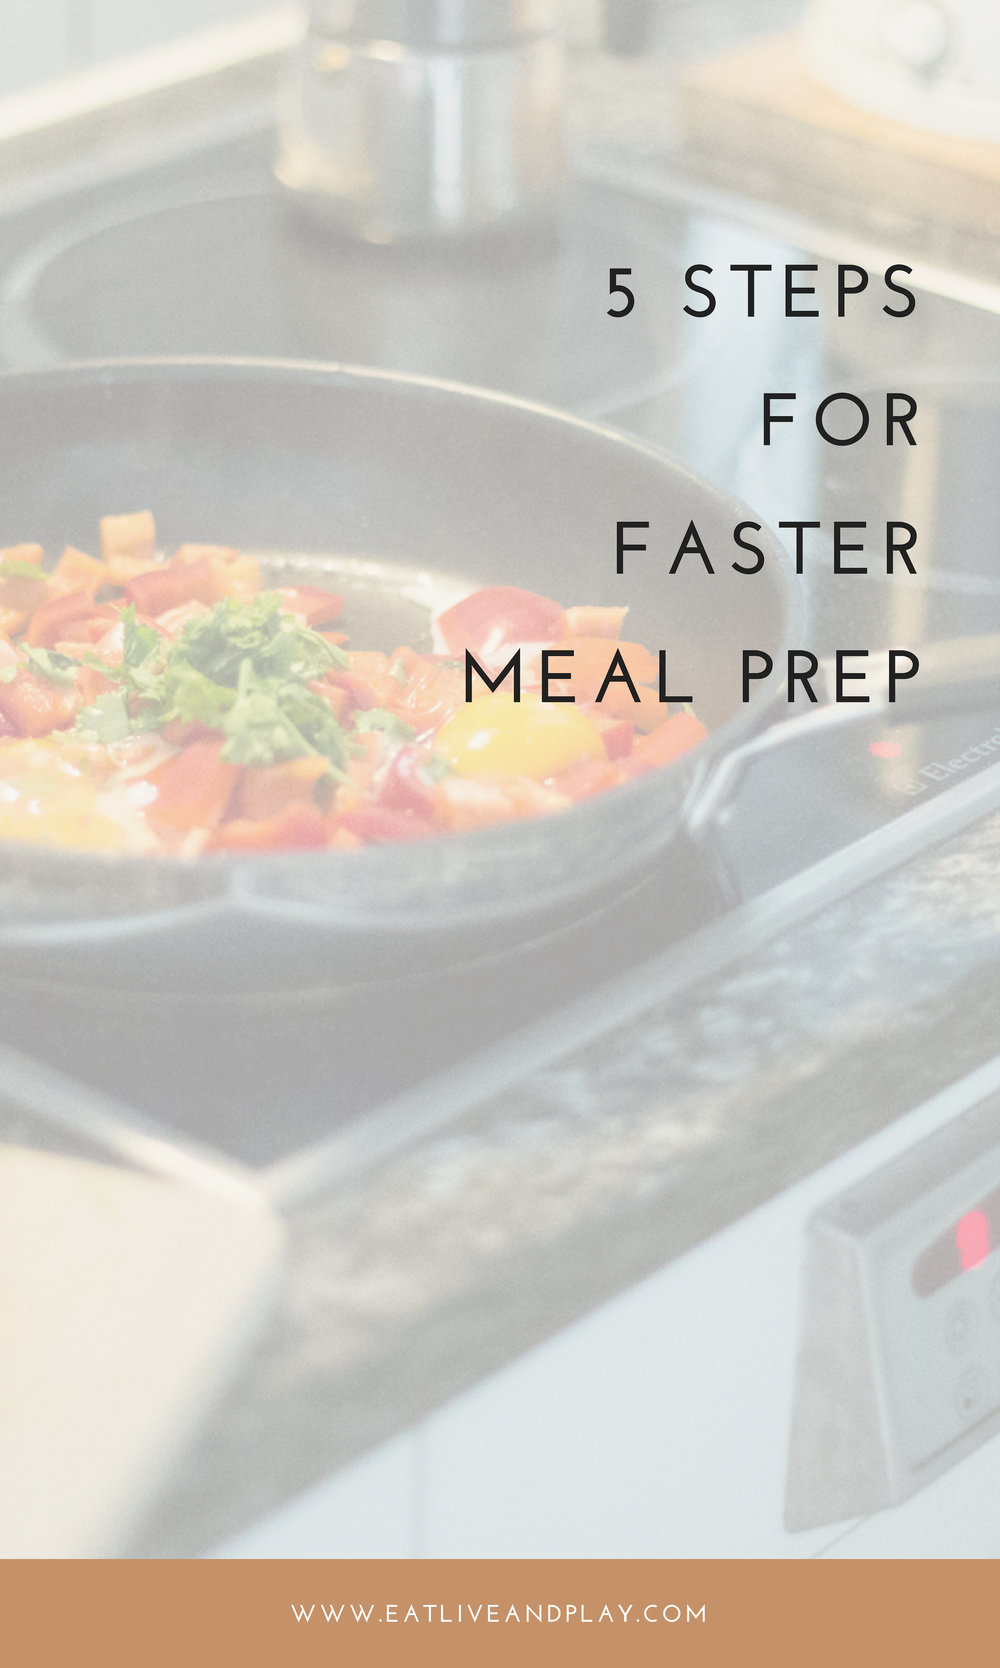 Use this easy 5 step meal prep system to save you time and frustration in the kitchen. The first 2 together take only 10 minutes!